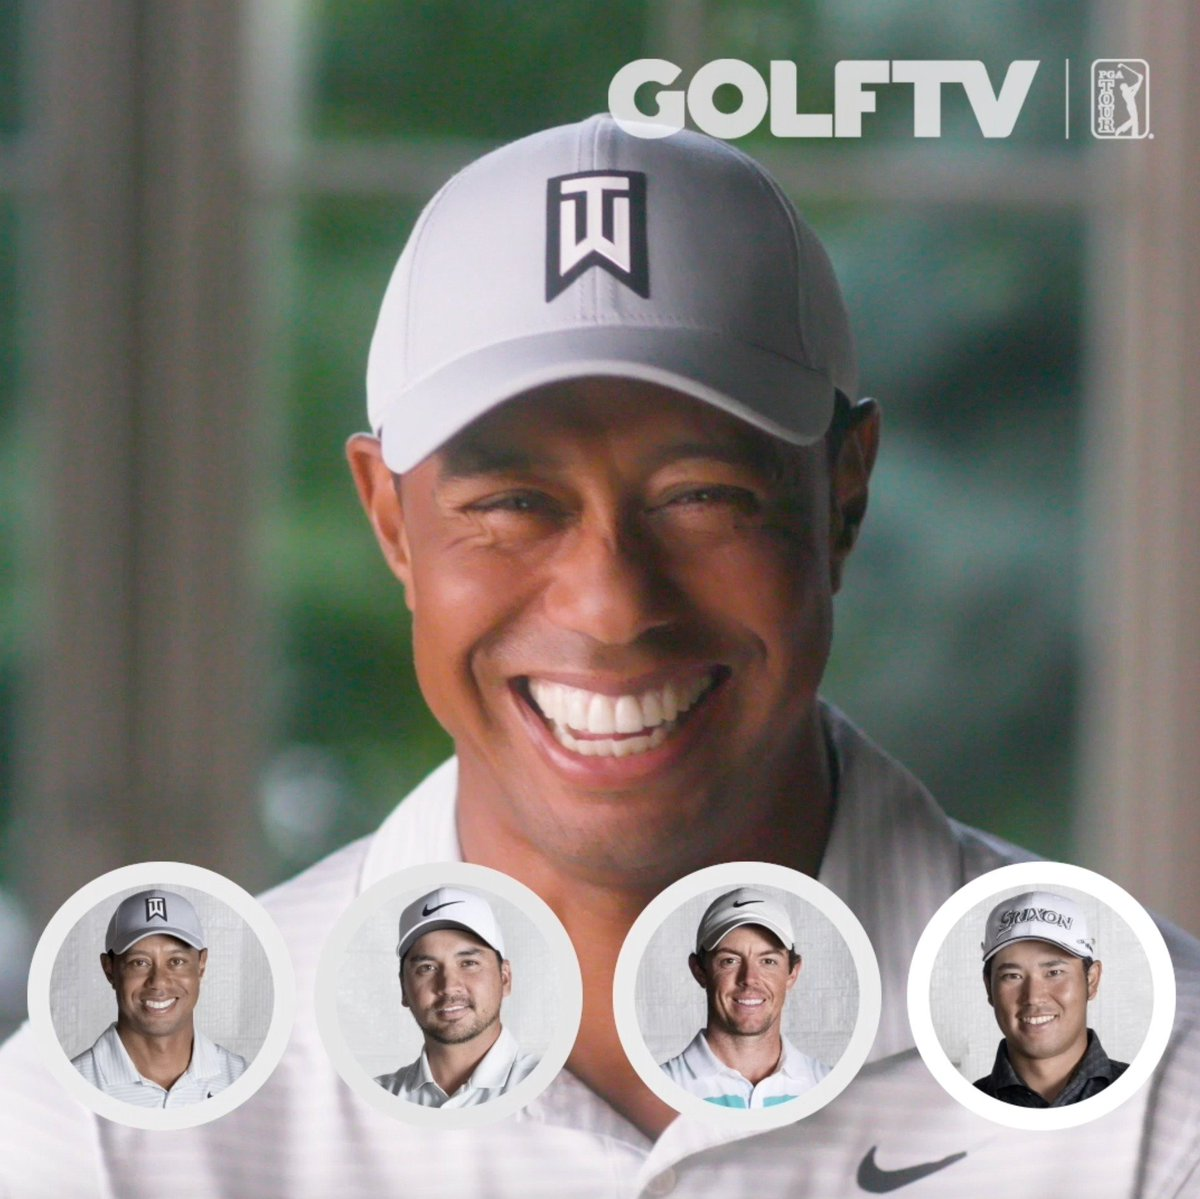 Who would you rather... More info on #TheChallengeJapanSkins event: challenge.golf.tv